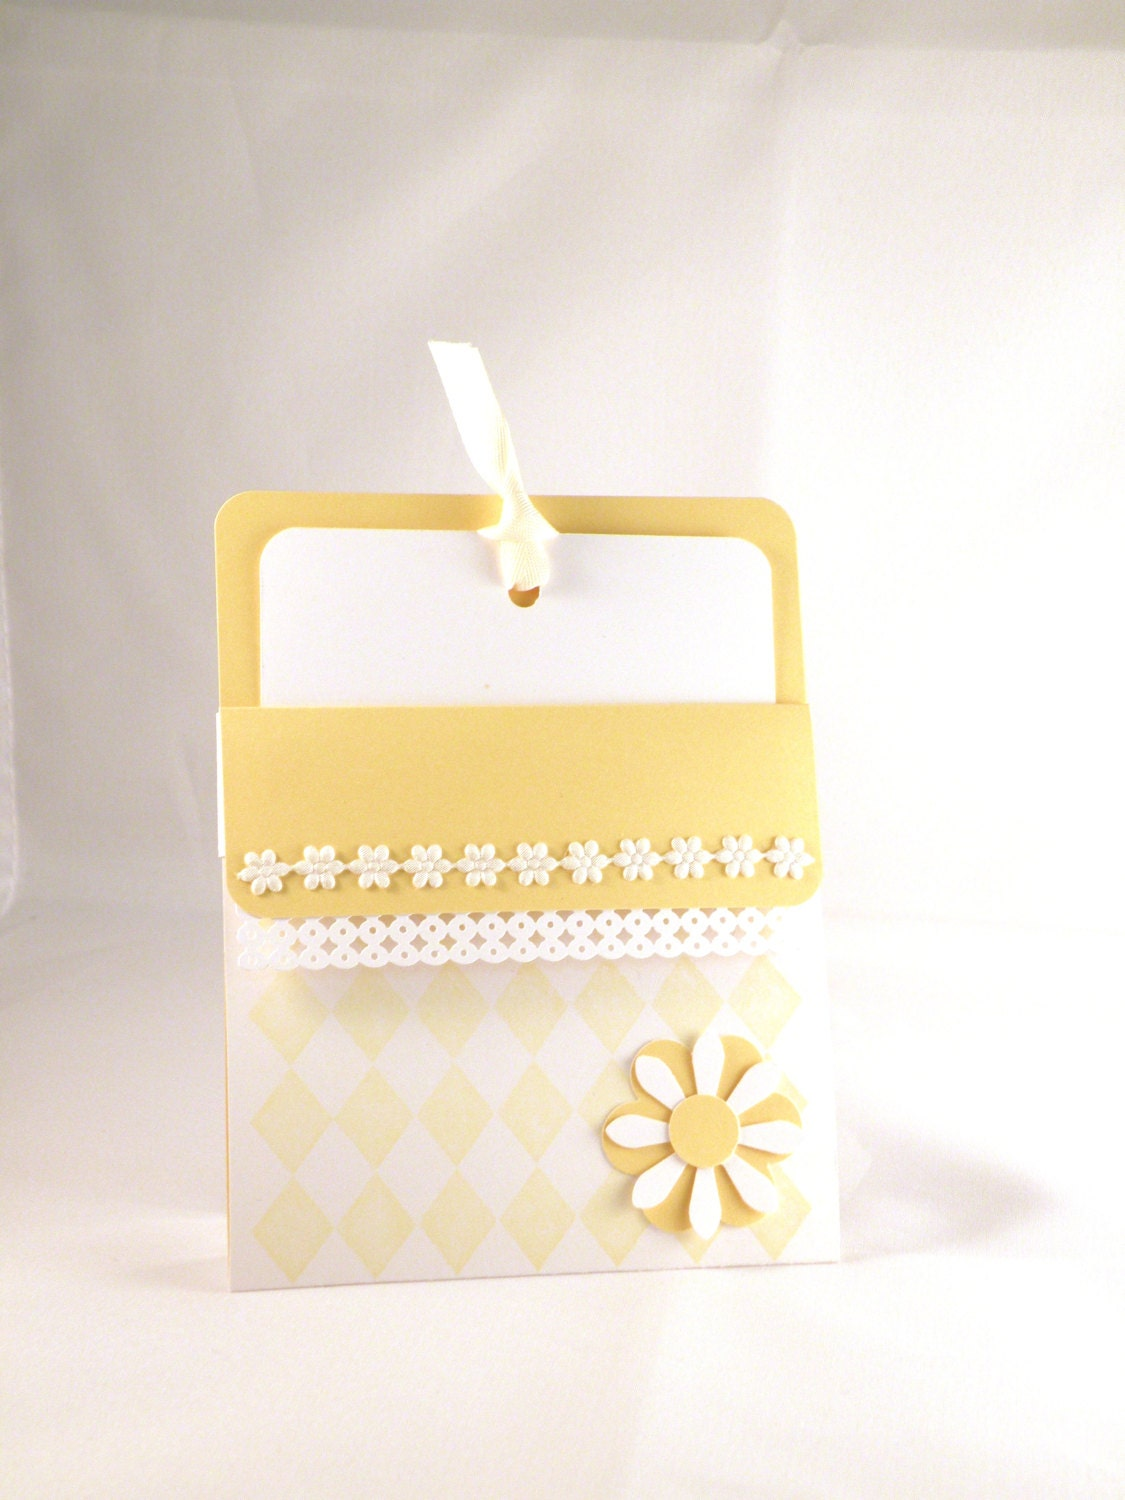 8 Daisy Invitations in Yellow and White